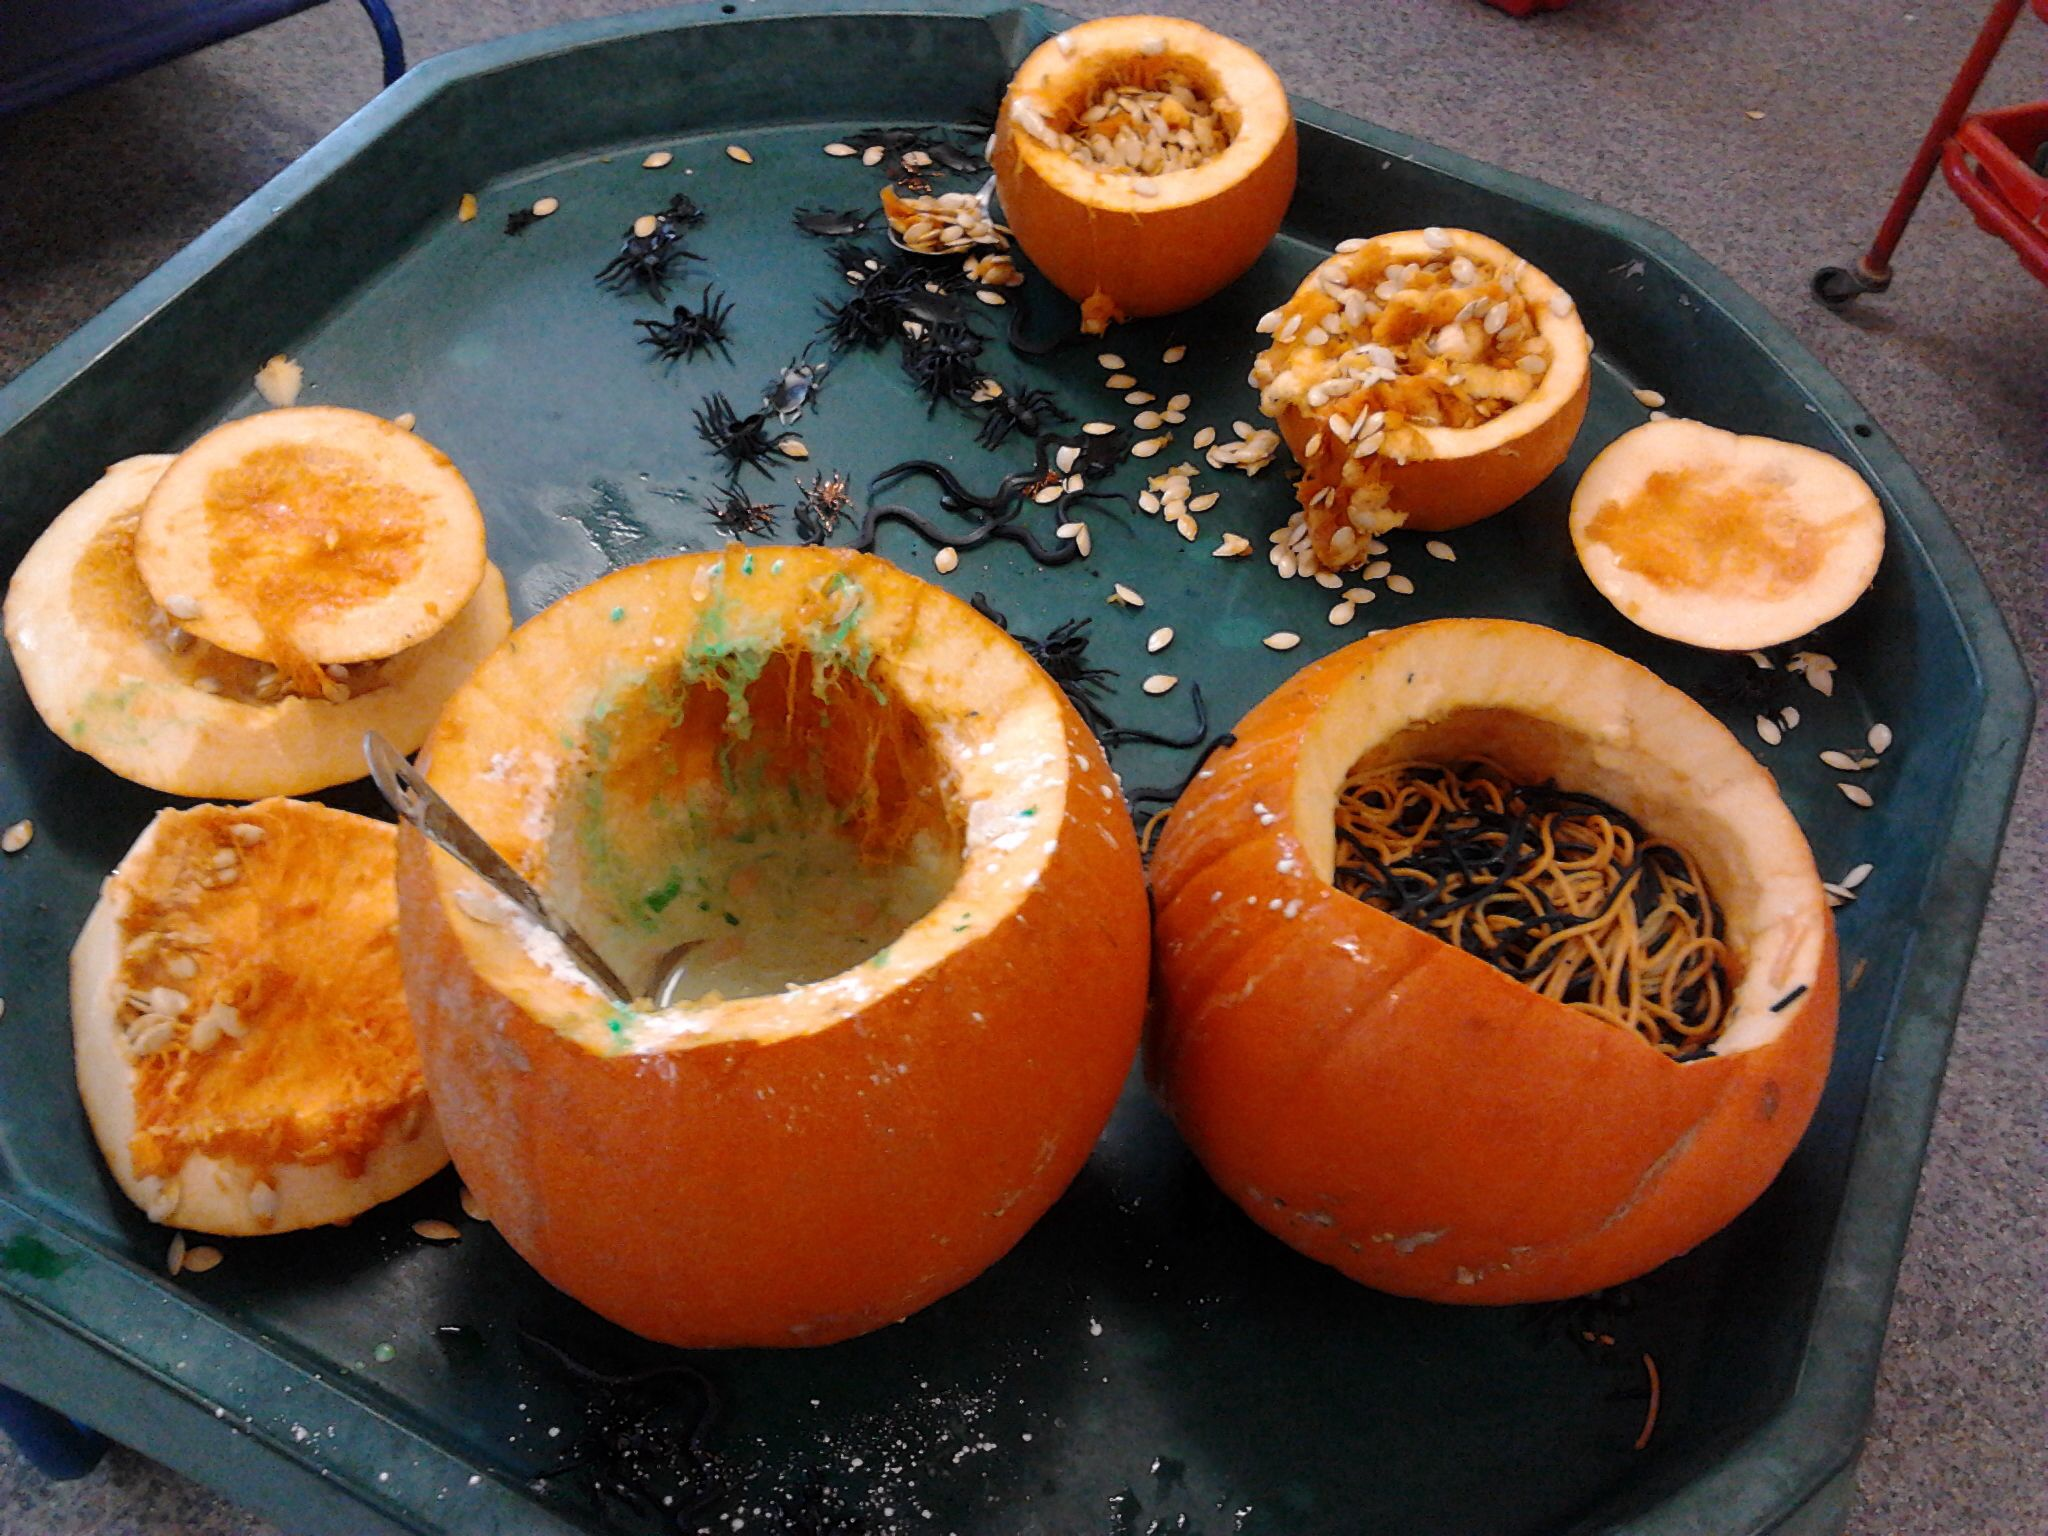 Pumpkin filled messy play with spiders, worms and green gloop